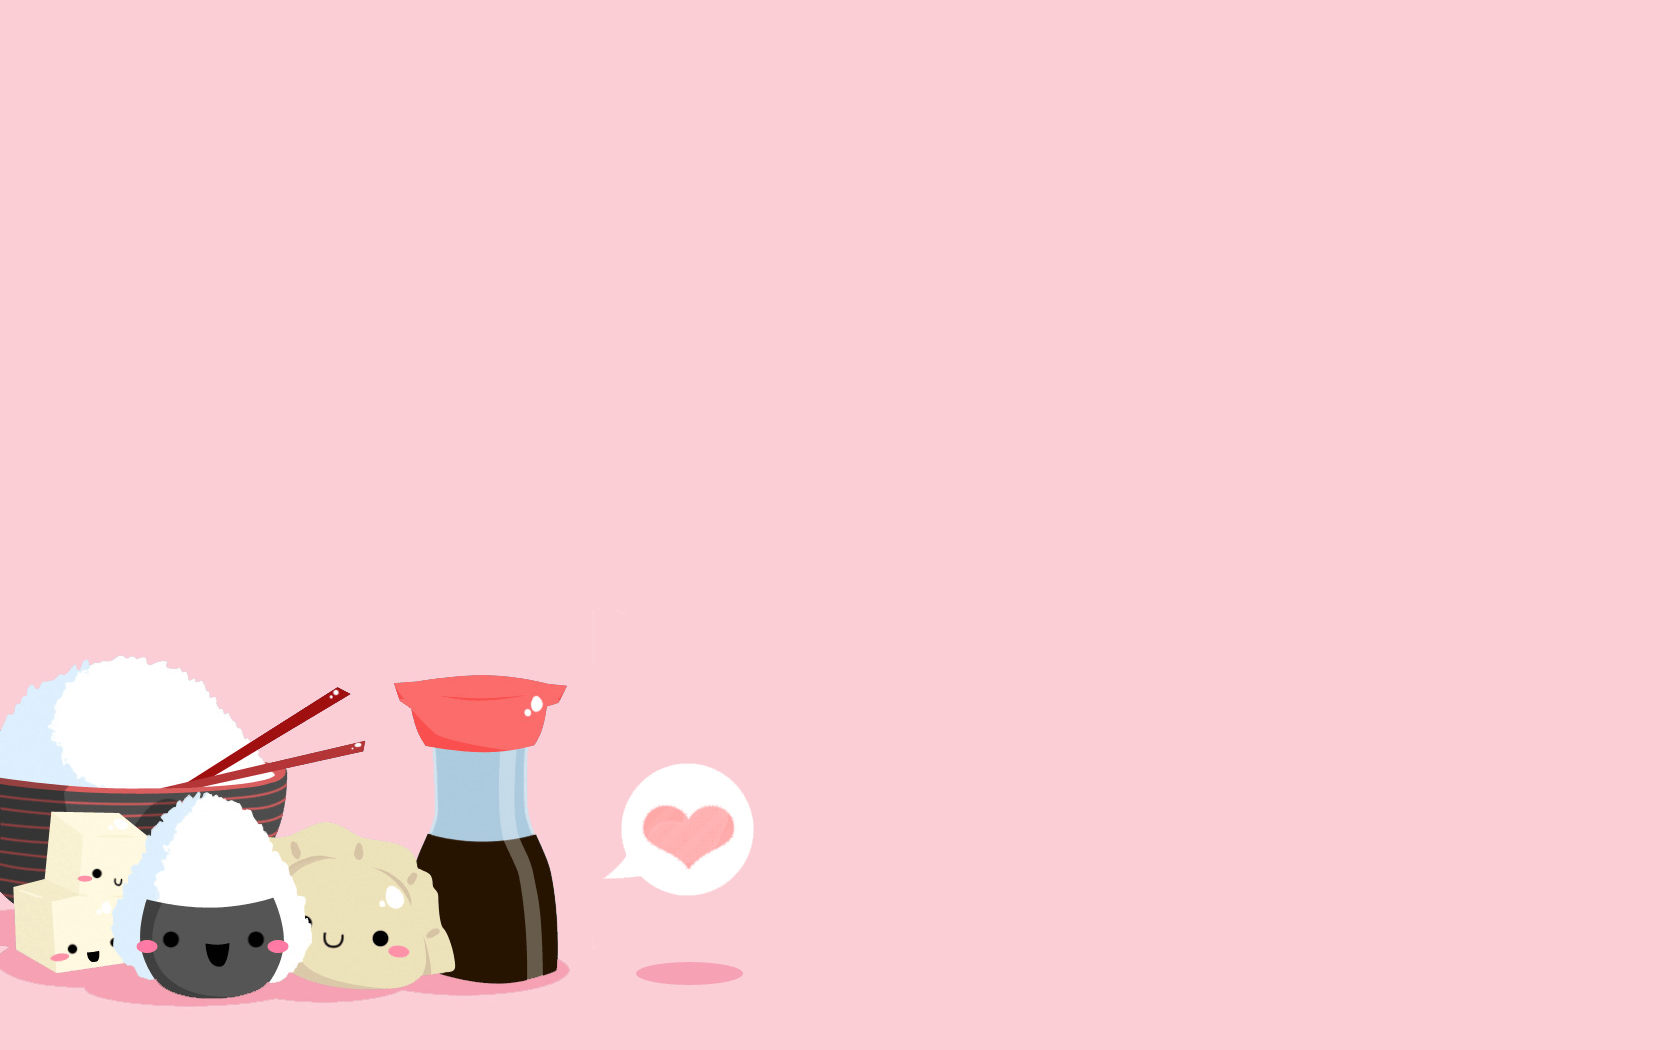 Kawaii Wallpaper: Improve Your Computer Performance With the Quality and Ease